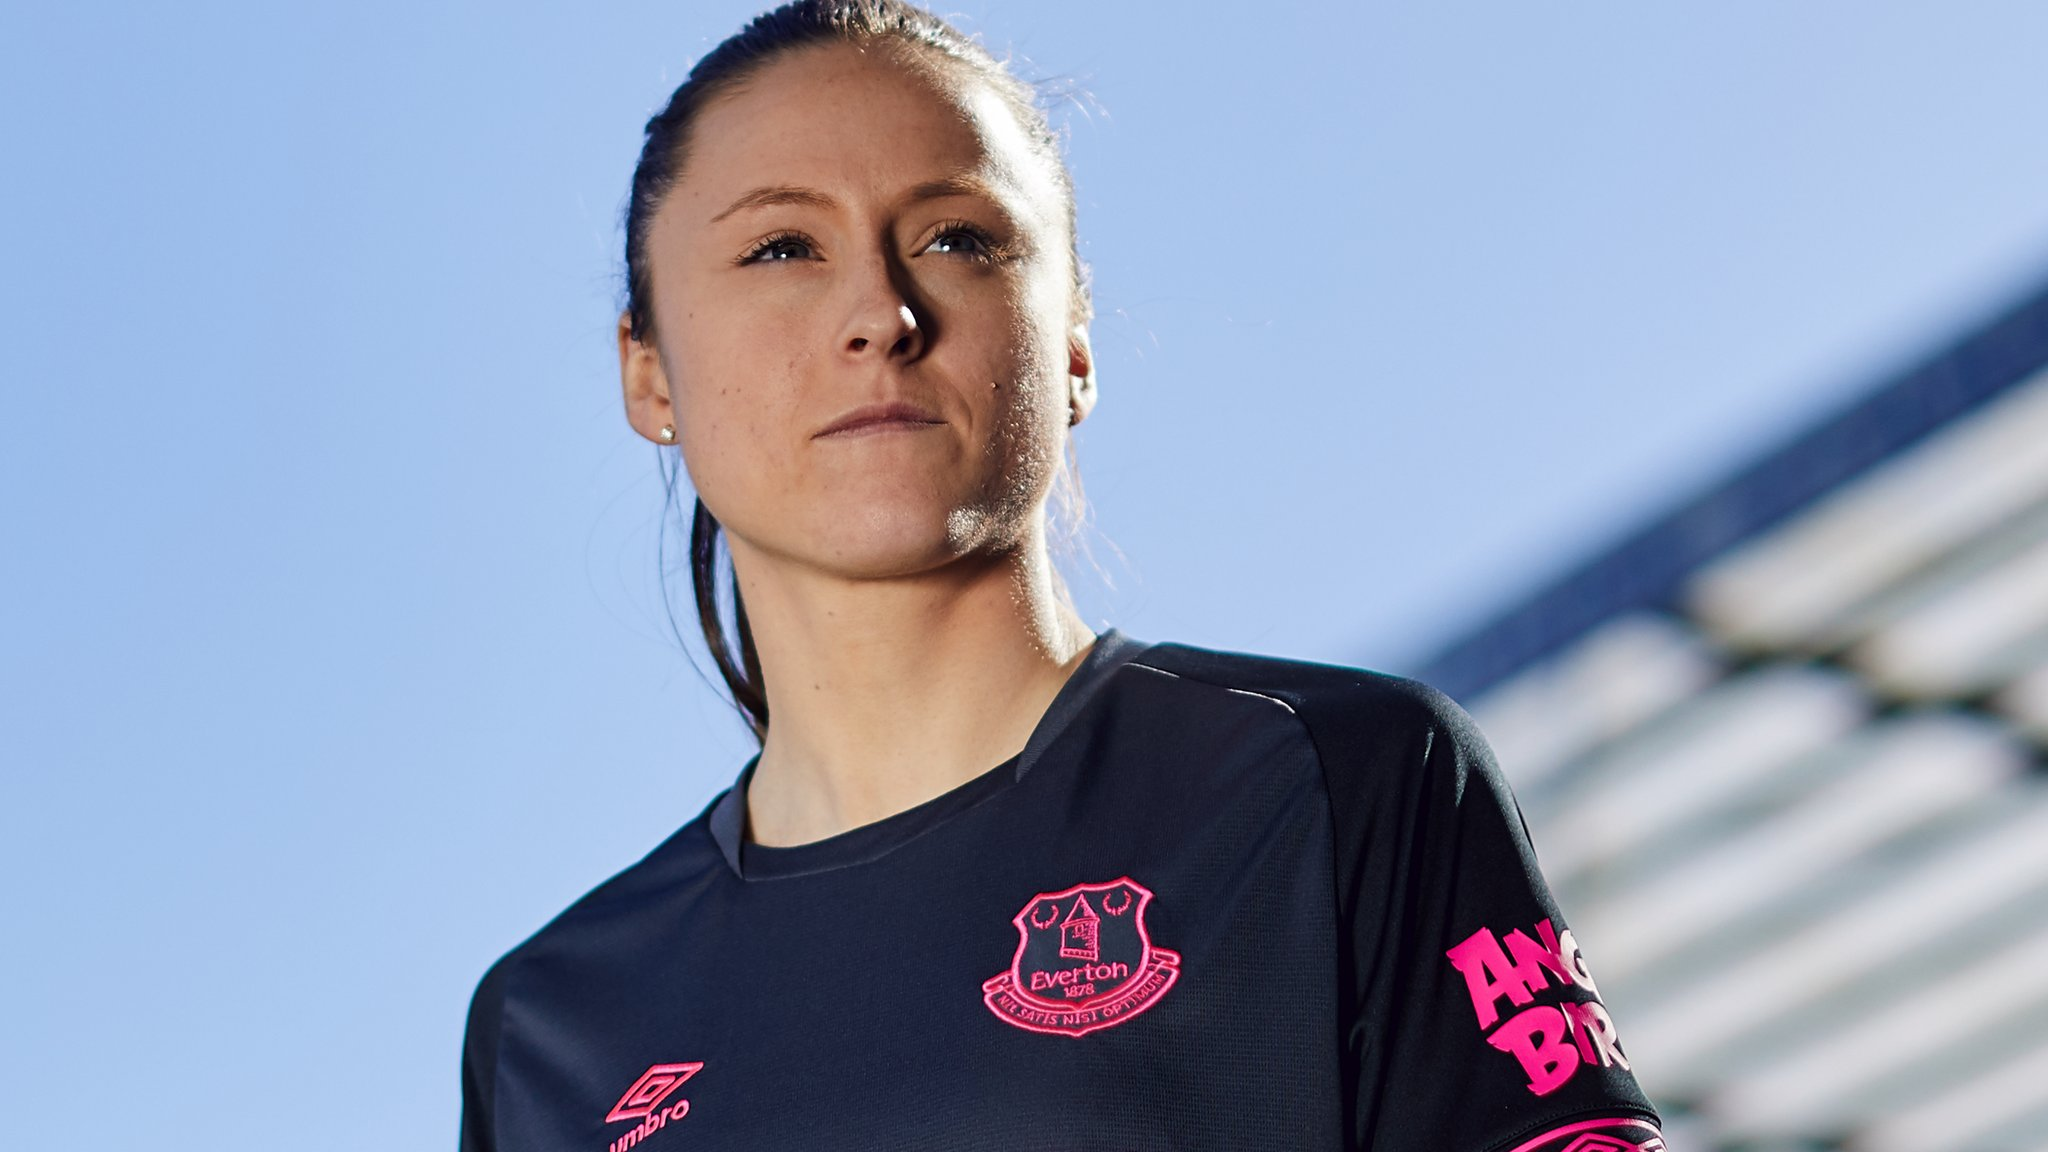 Everton kit launched by ladies squad in Premier League first